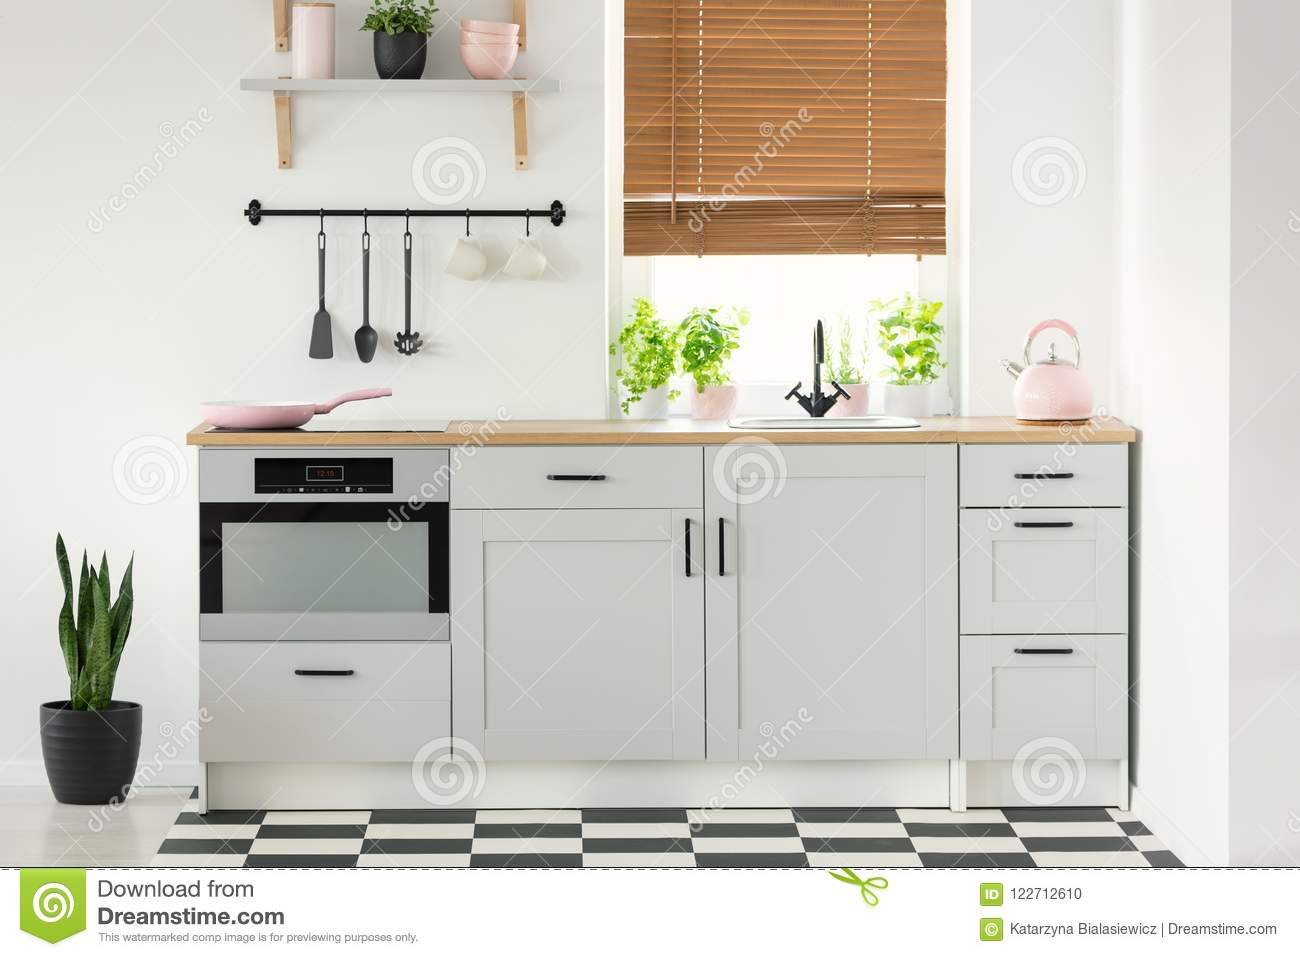 Real Photo Of A Kitchen Interior With White Cupboards Pink